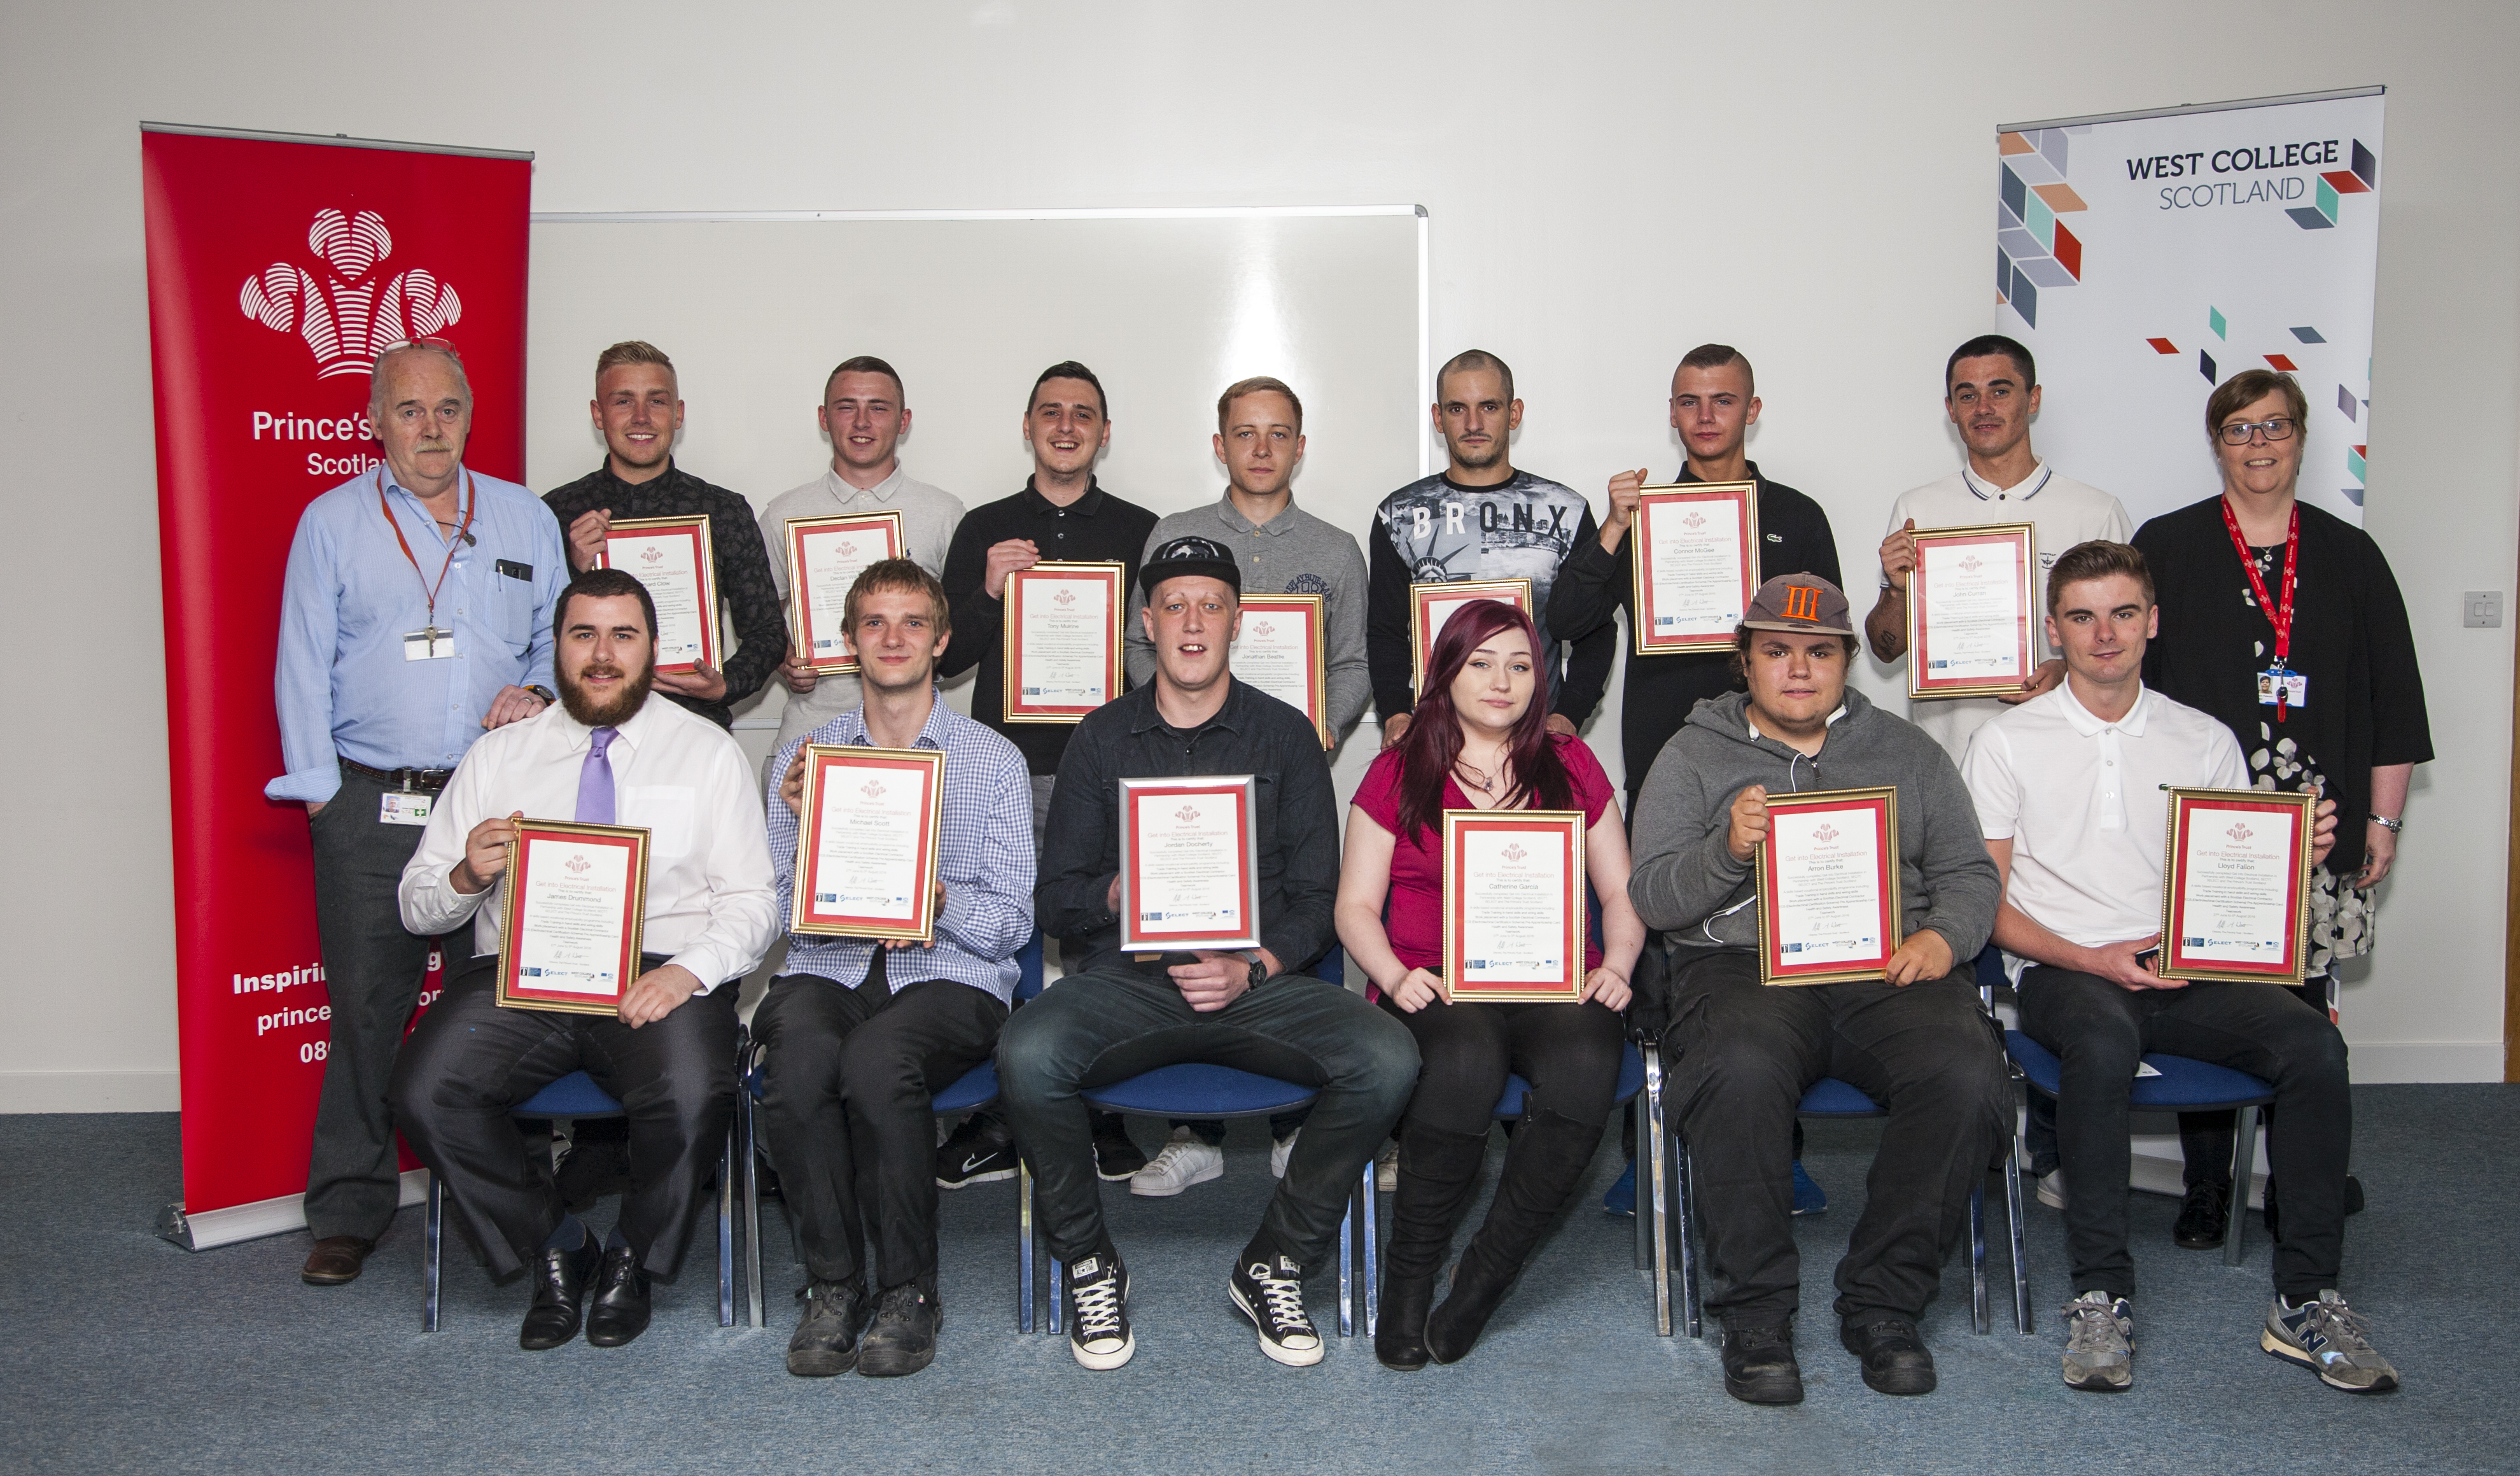 west college scotland help spark bright futures for